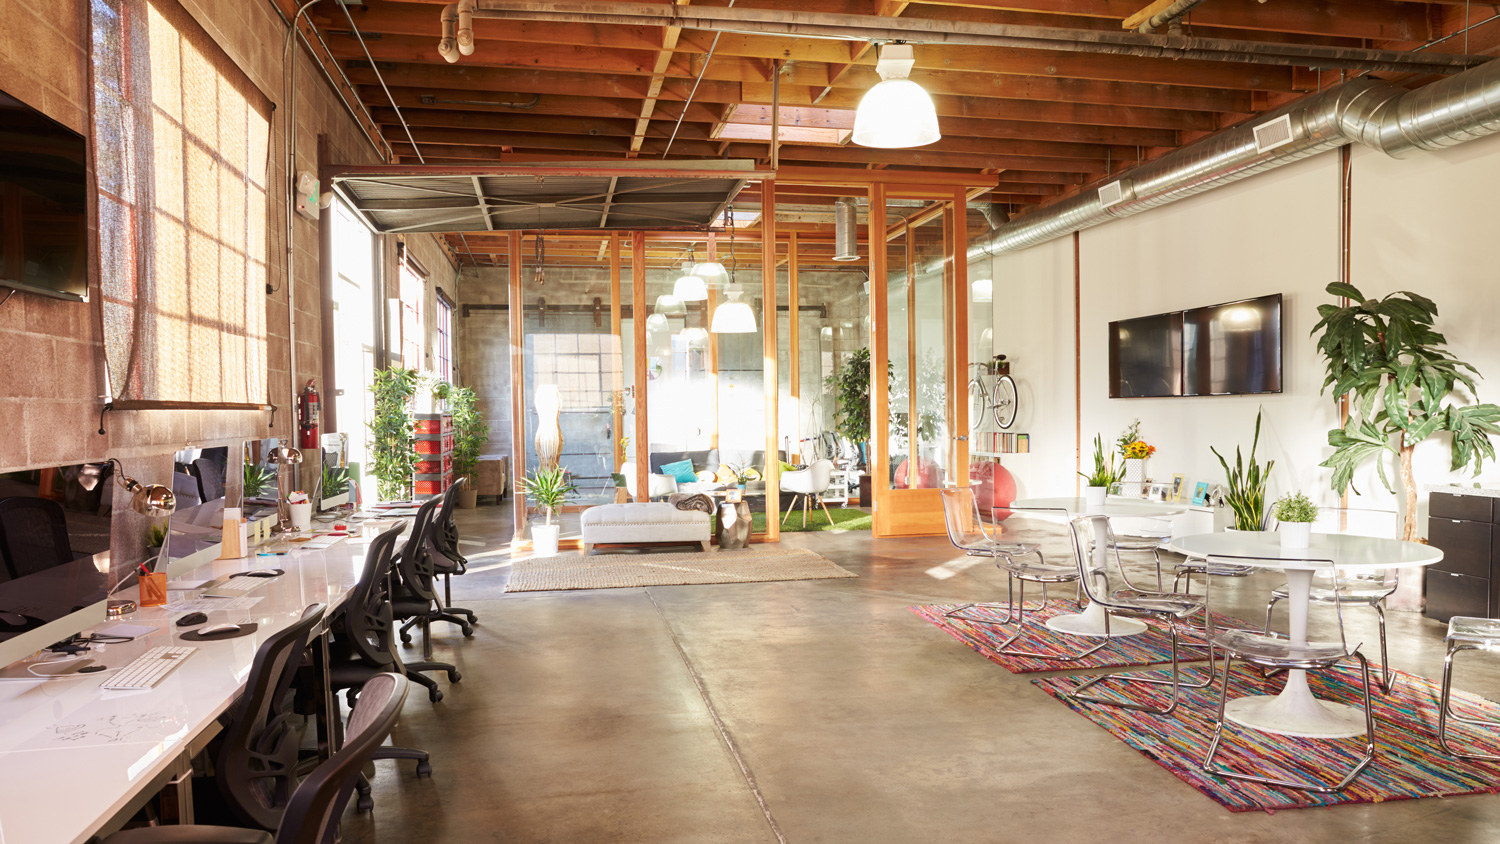 2017 workplace trends how the work environment is changing international workplace blog for Interior design work environment